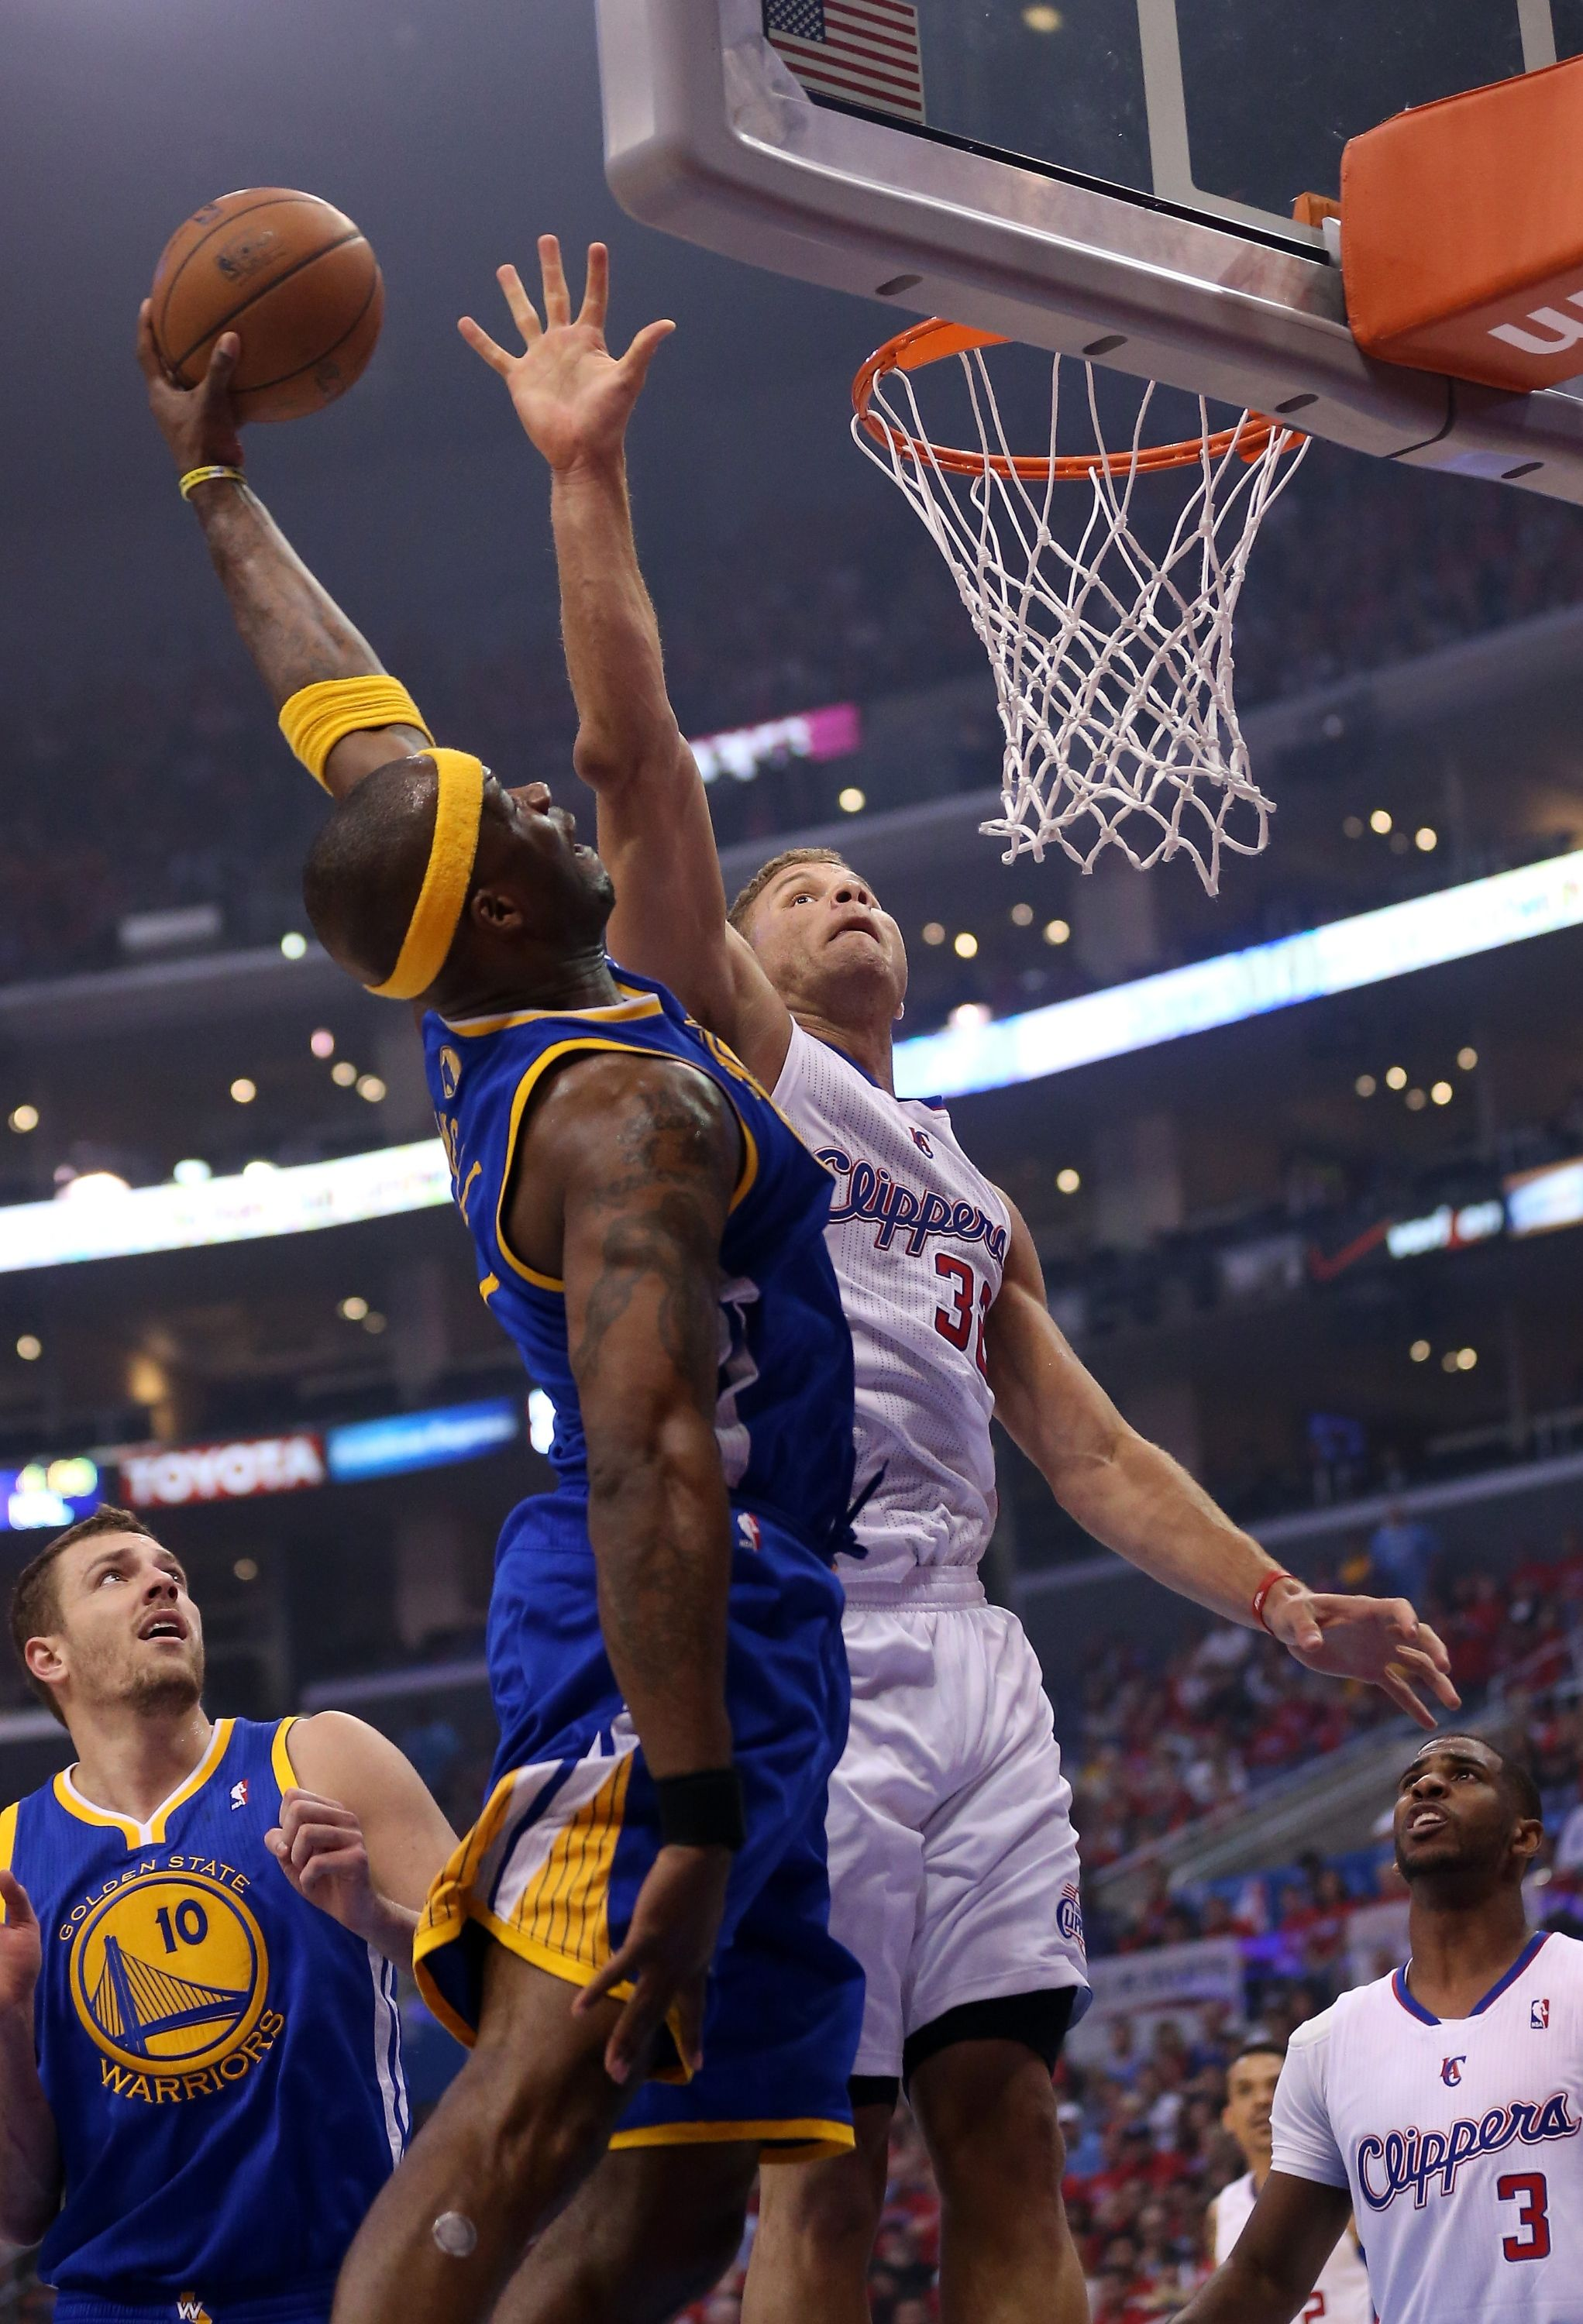 Los Angeles Ca April 19 Jermaine O Neal 7 Of The Golden State Warriors Goes Up For A Shot Again Jermaine O Neal Golden State Warriors Los Angeles Clippers